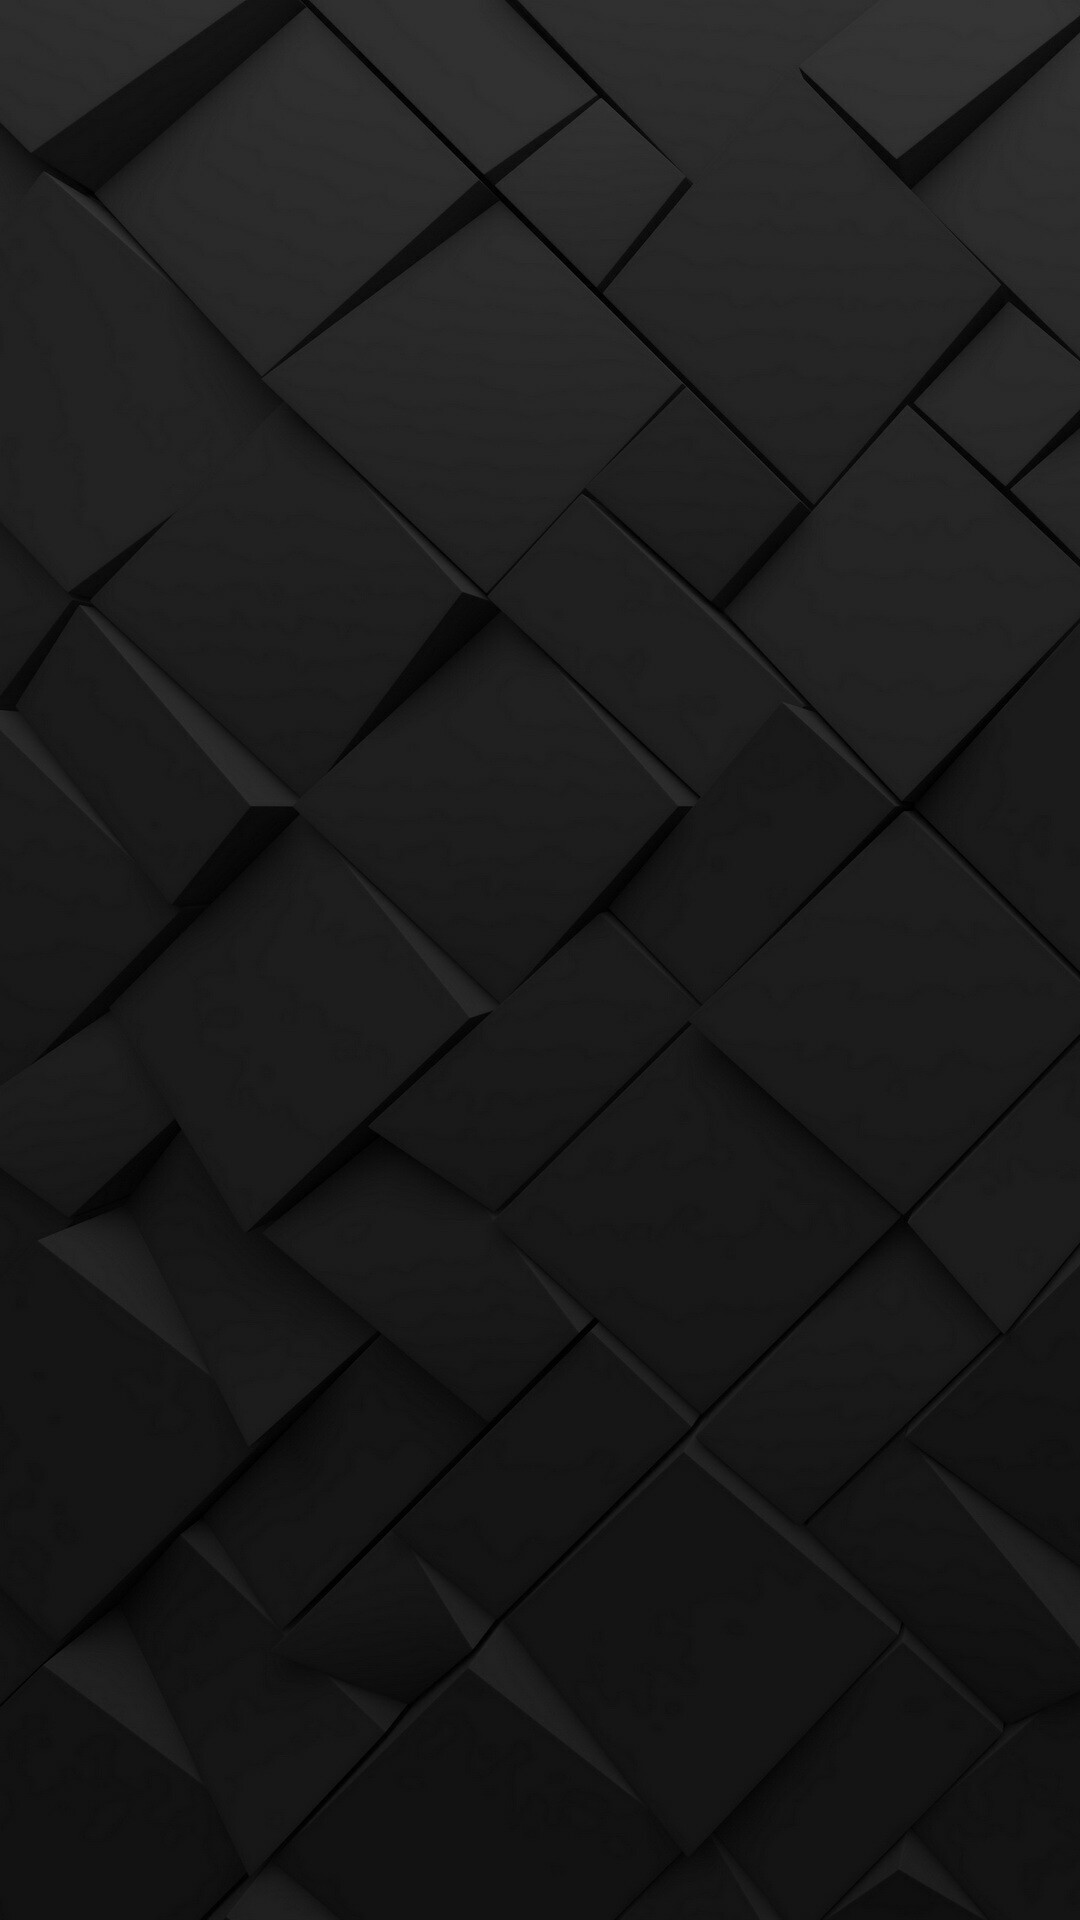 3d Peel And Stick Brick Wallpaper Black And White Camo Wallpaper 64 Images